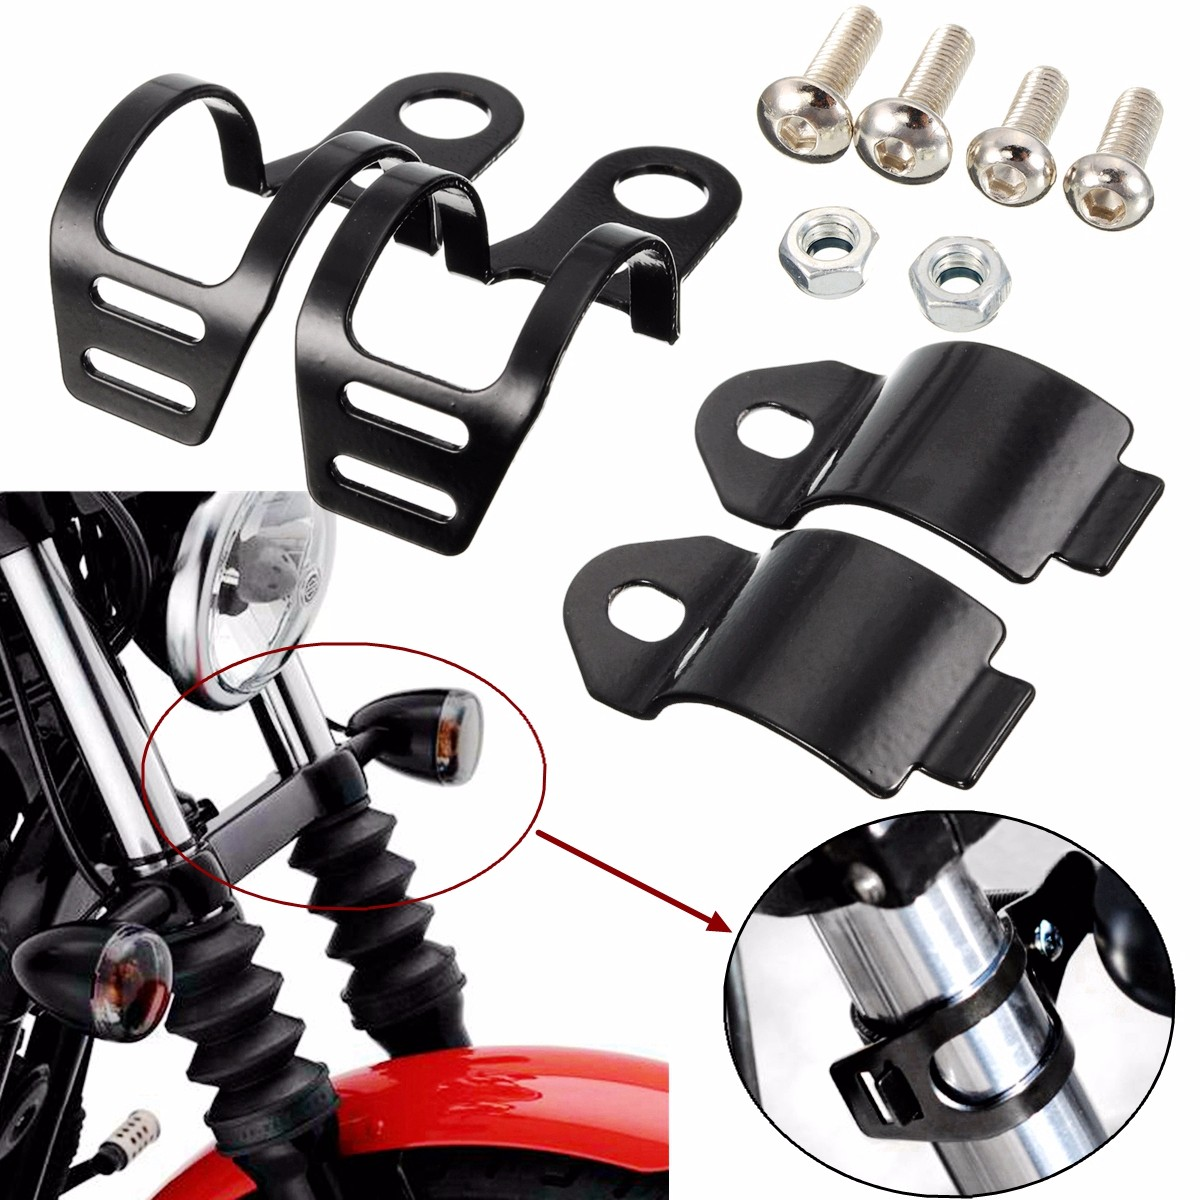 Fork Clamp Type Motorcycle Turn Signal Lamp Holder Headlight Turn Light Mount Bracket For 30-35mm Front Fork Scooter Motorcycle